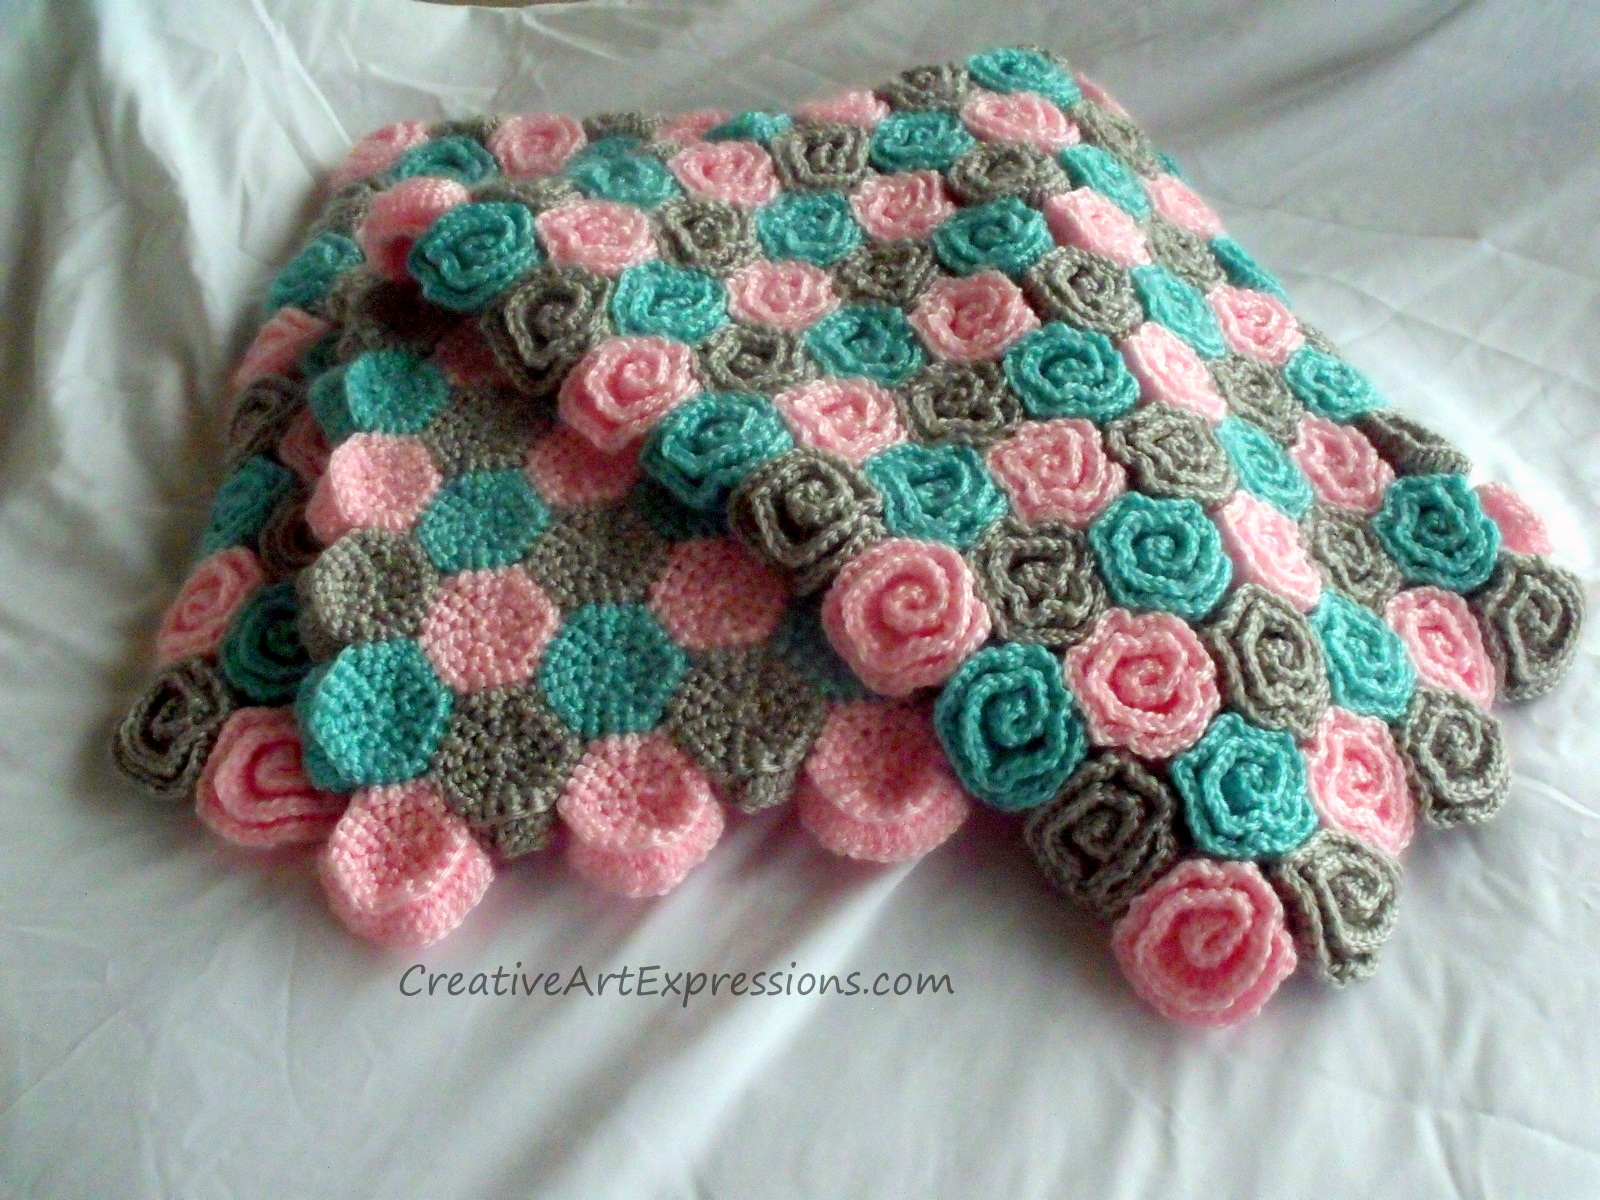 Creative Art Expressions Hand Crocheted Roses Baby Blanket ...